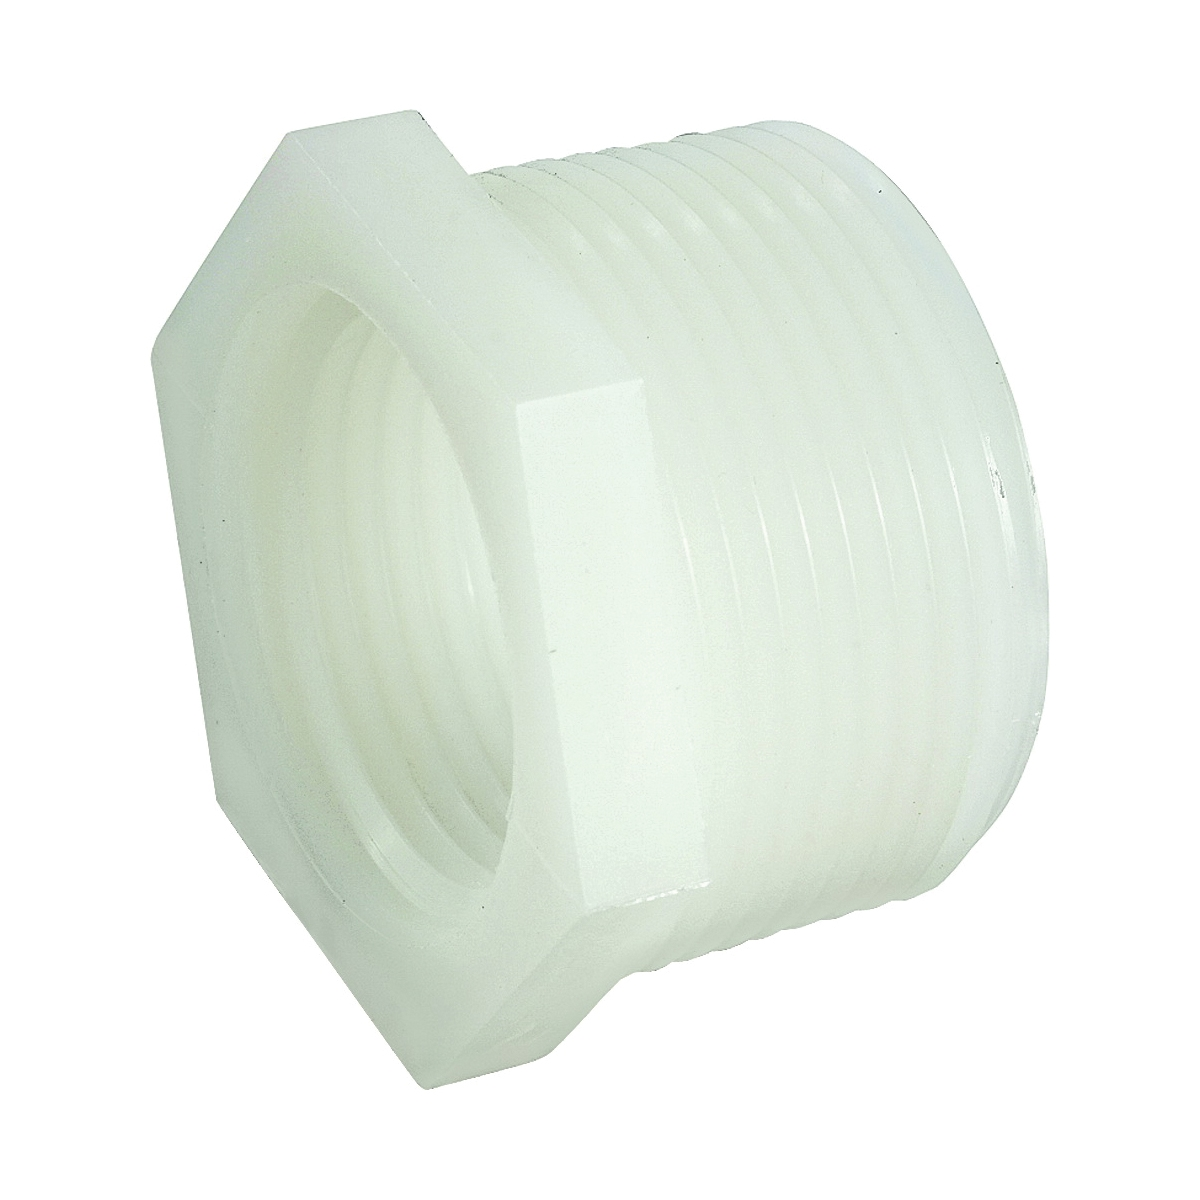 Picture of Anderson Metals 53610-0604 Pipe Reducing Bushing, 3/8 x 1/4 in, Male x Female Thread, 150 psi Pressure